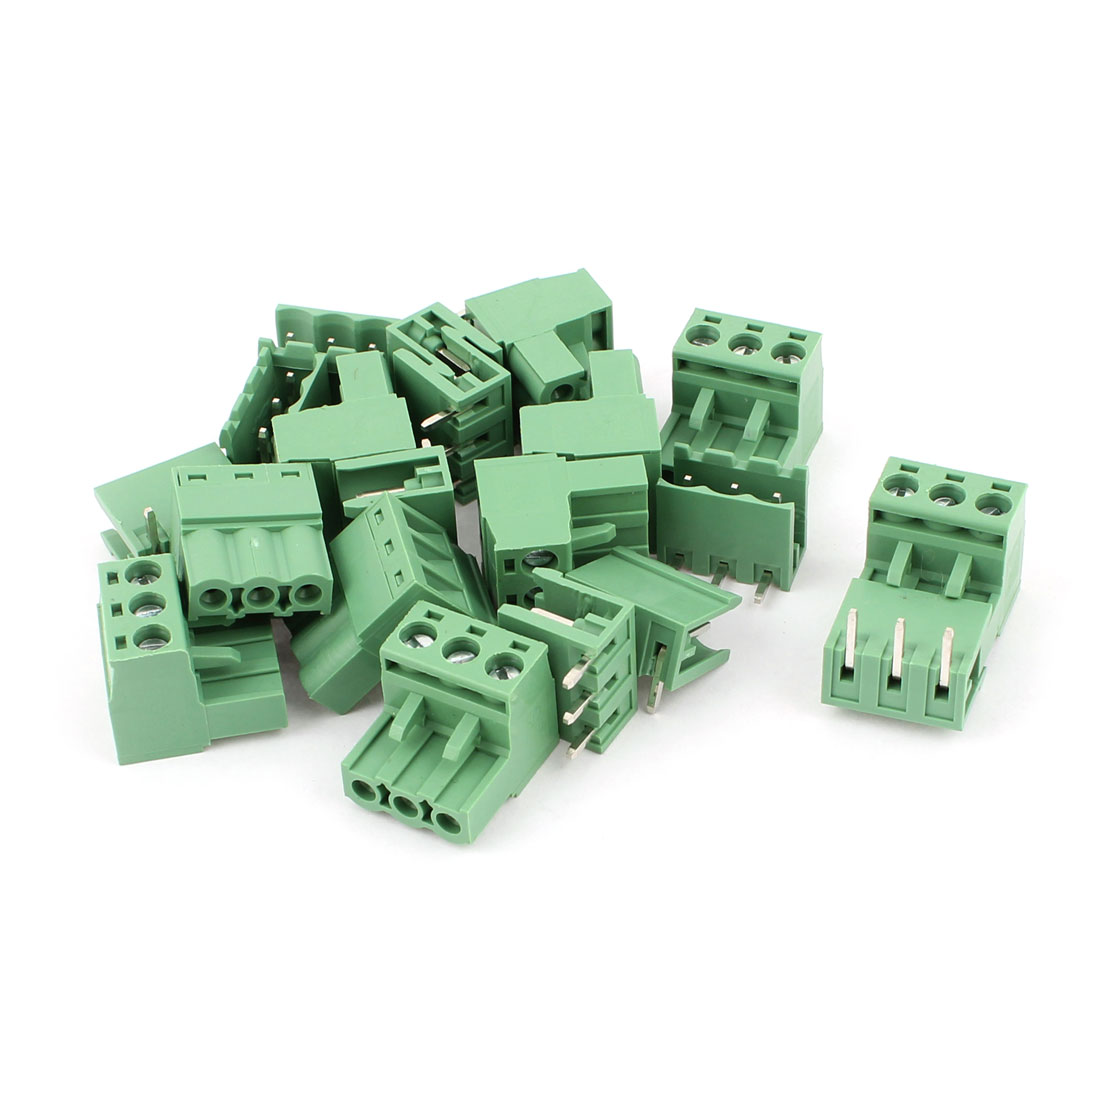 10 Pairs AC 300V 10A 5.08mm Spacing 3P Screw Pluggable Terminal Block Green